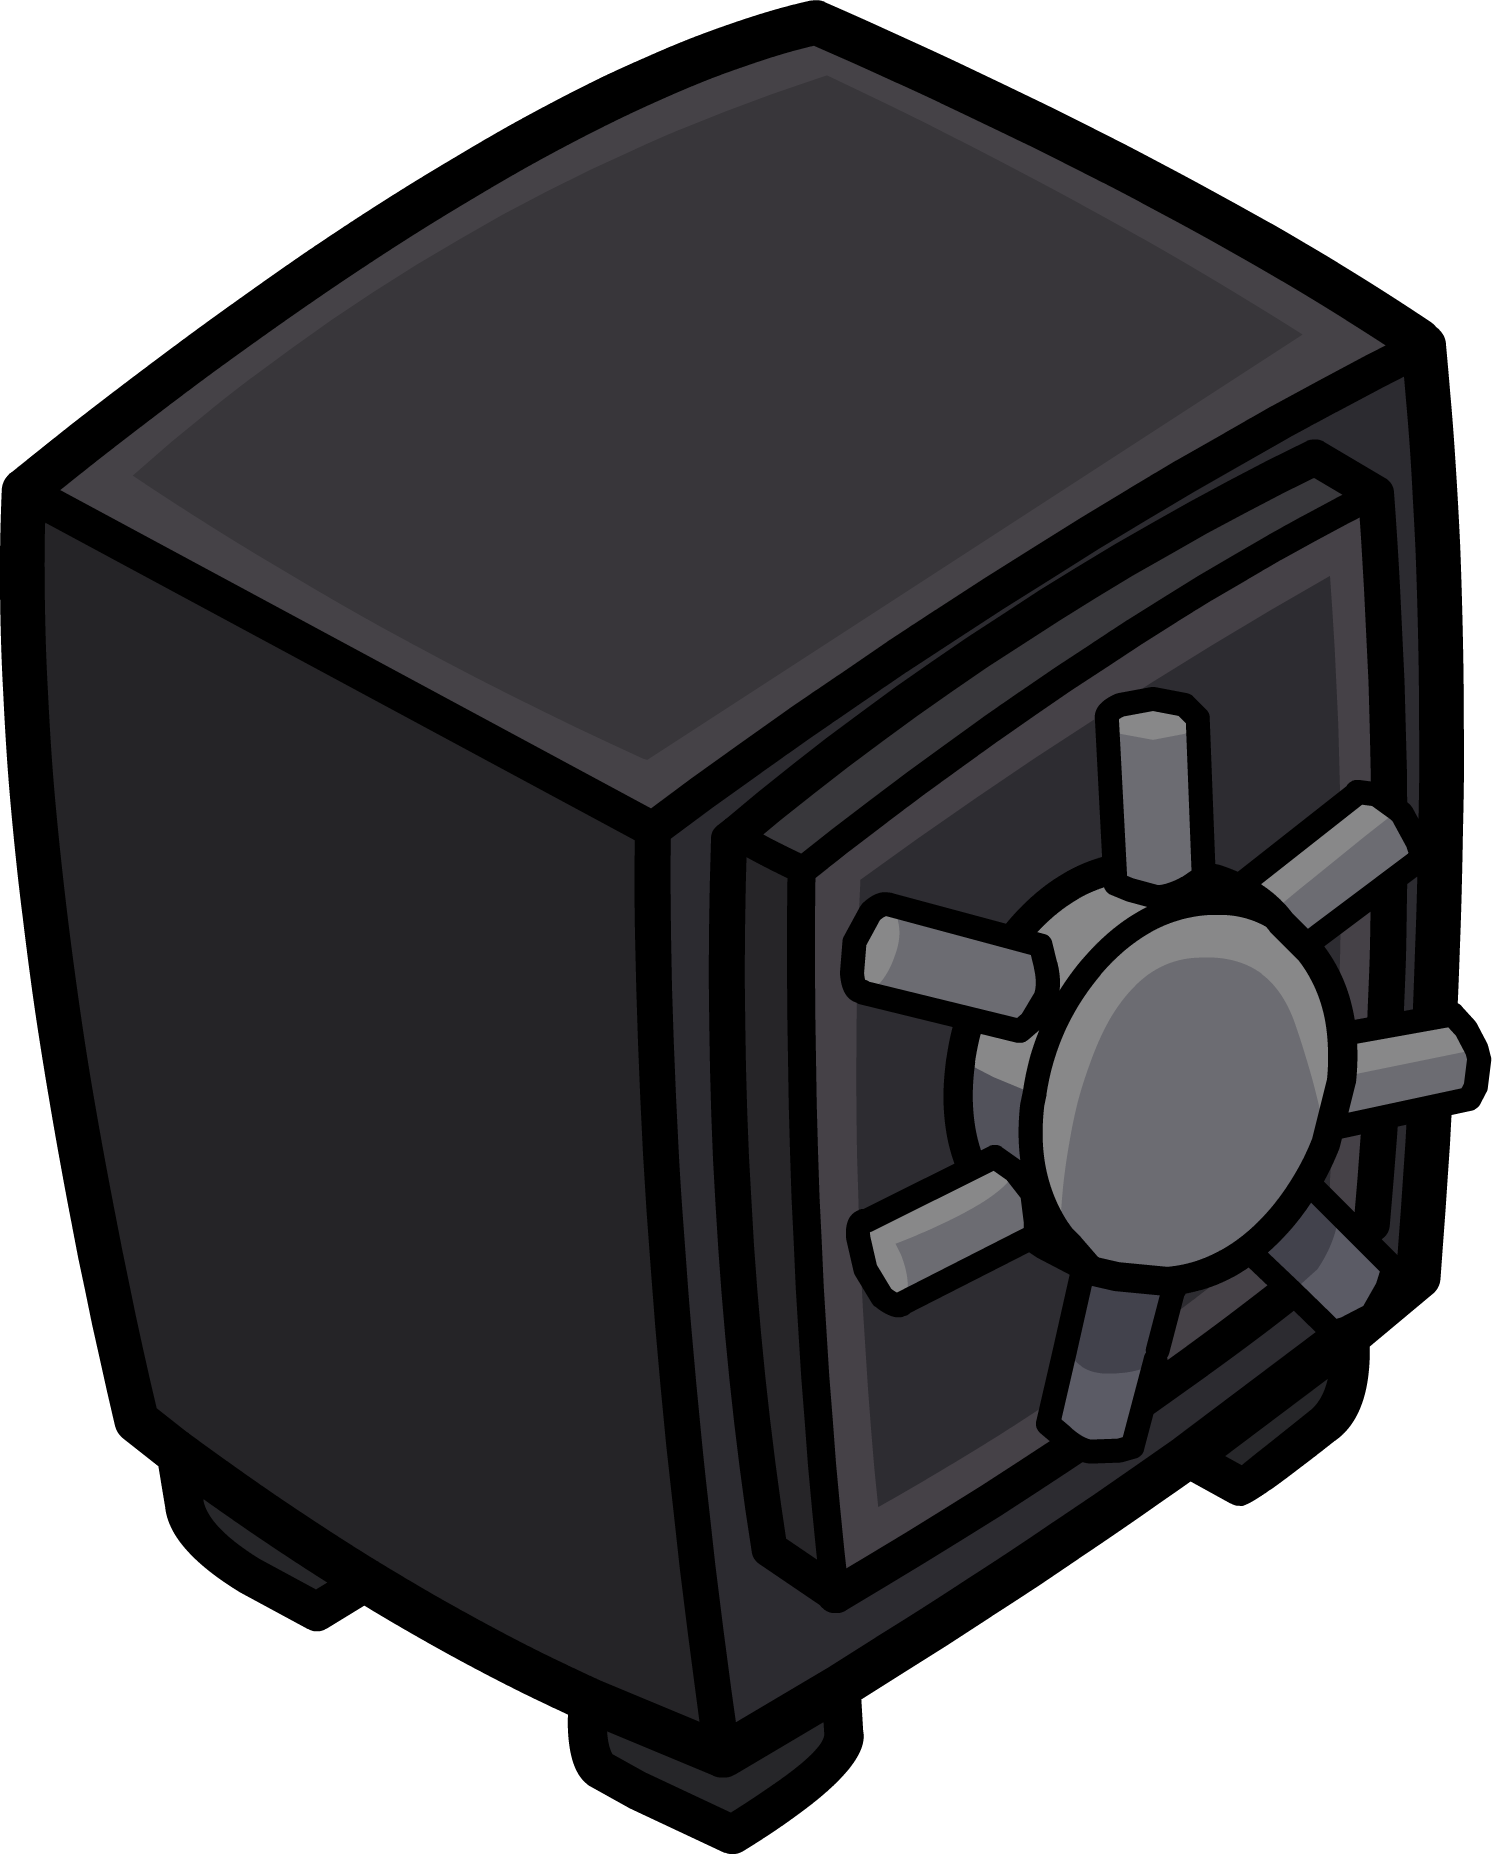 Safe clipart. Png image purepng free